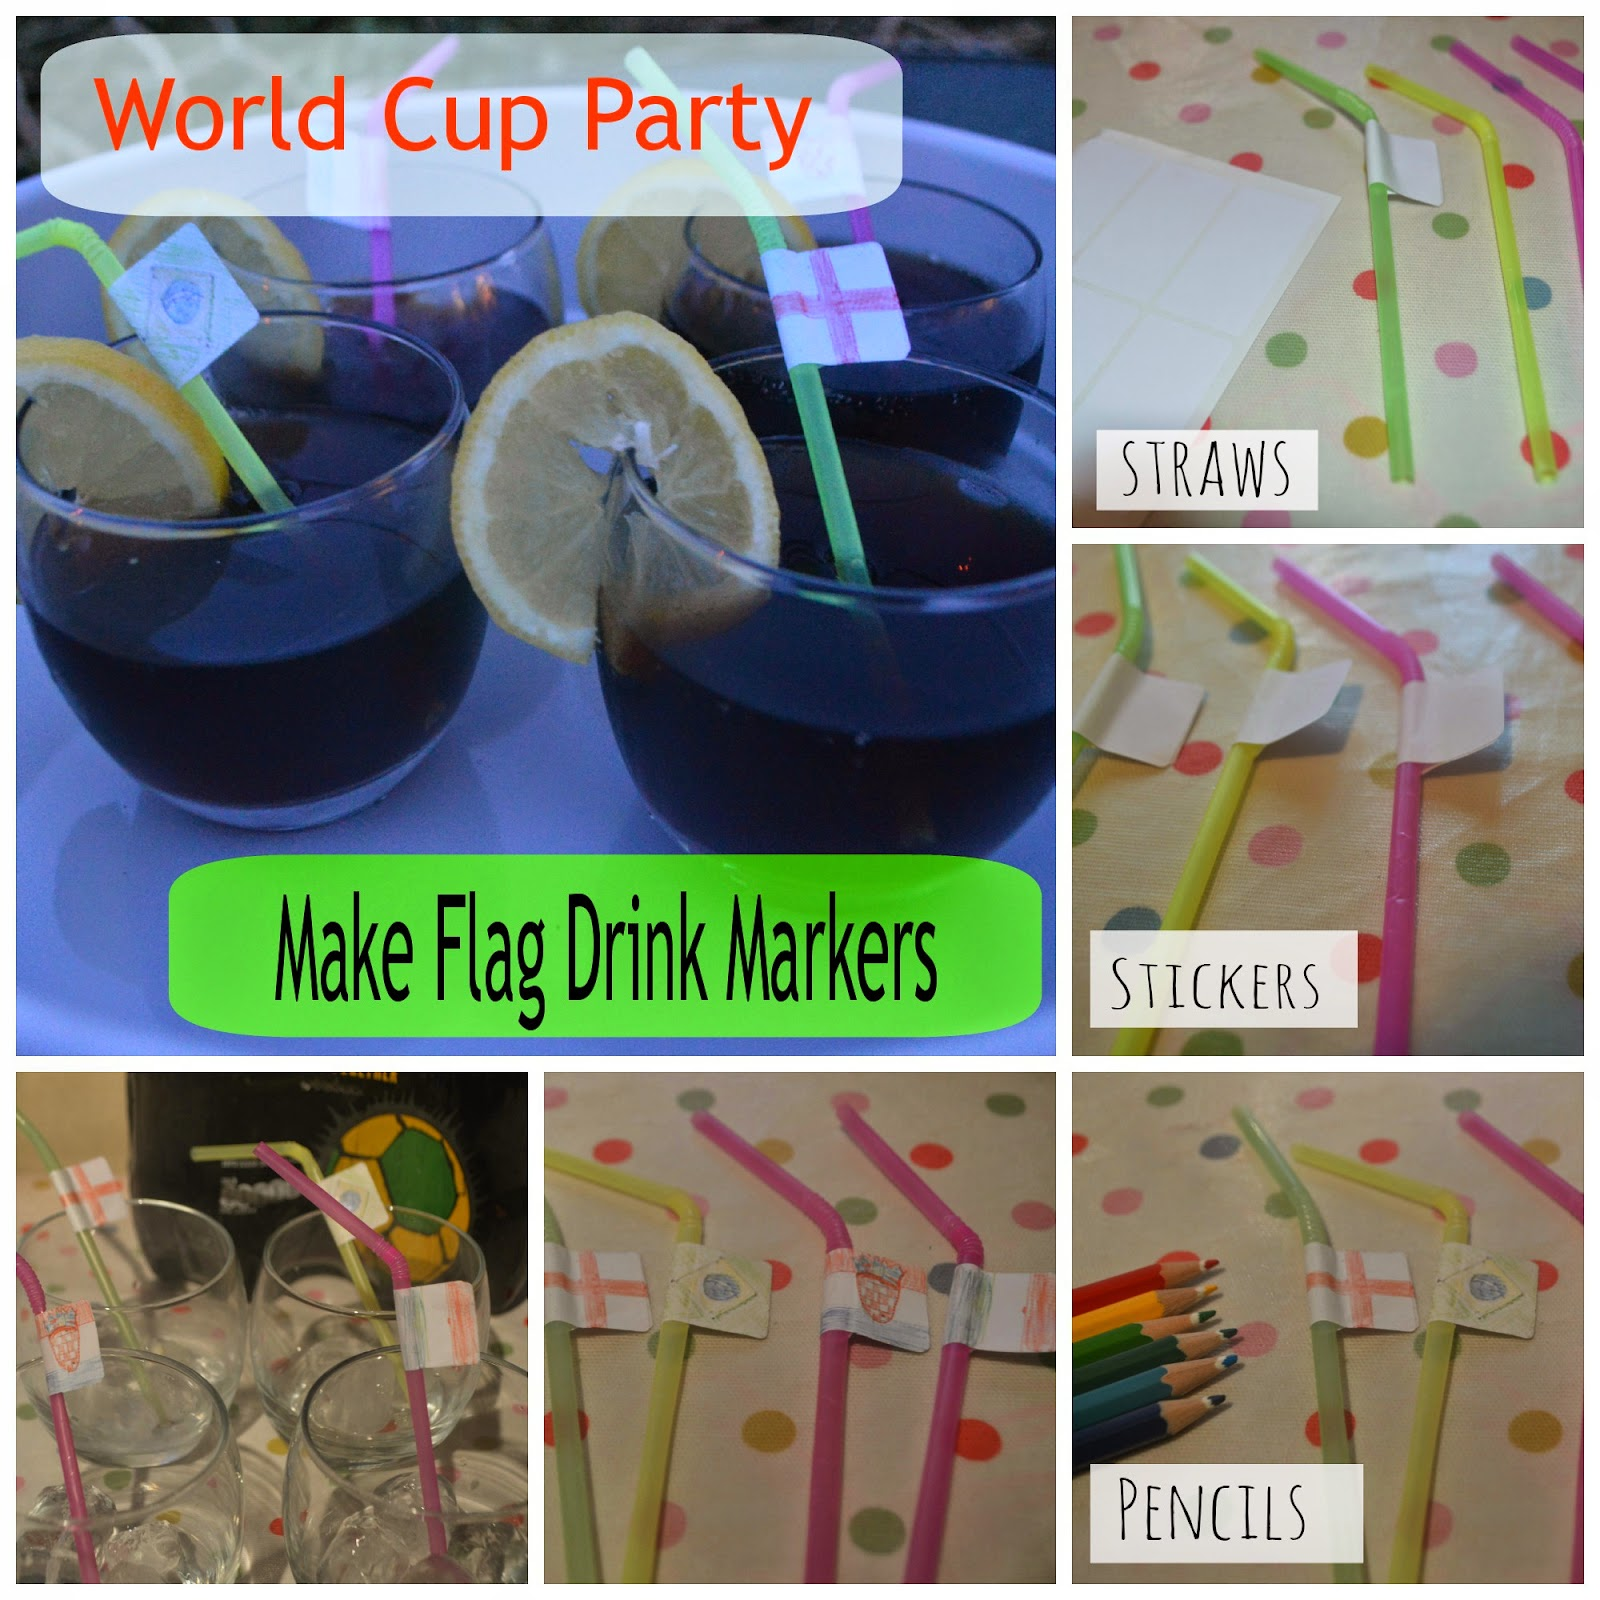 Flag Drink Markers Craft Big Match Planner Party Coca Cola Zero Refreshments CBIAS FIFA World Cup Brazil 2014